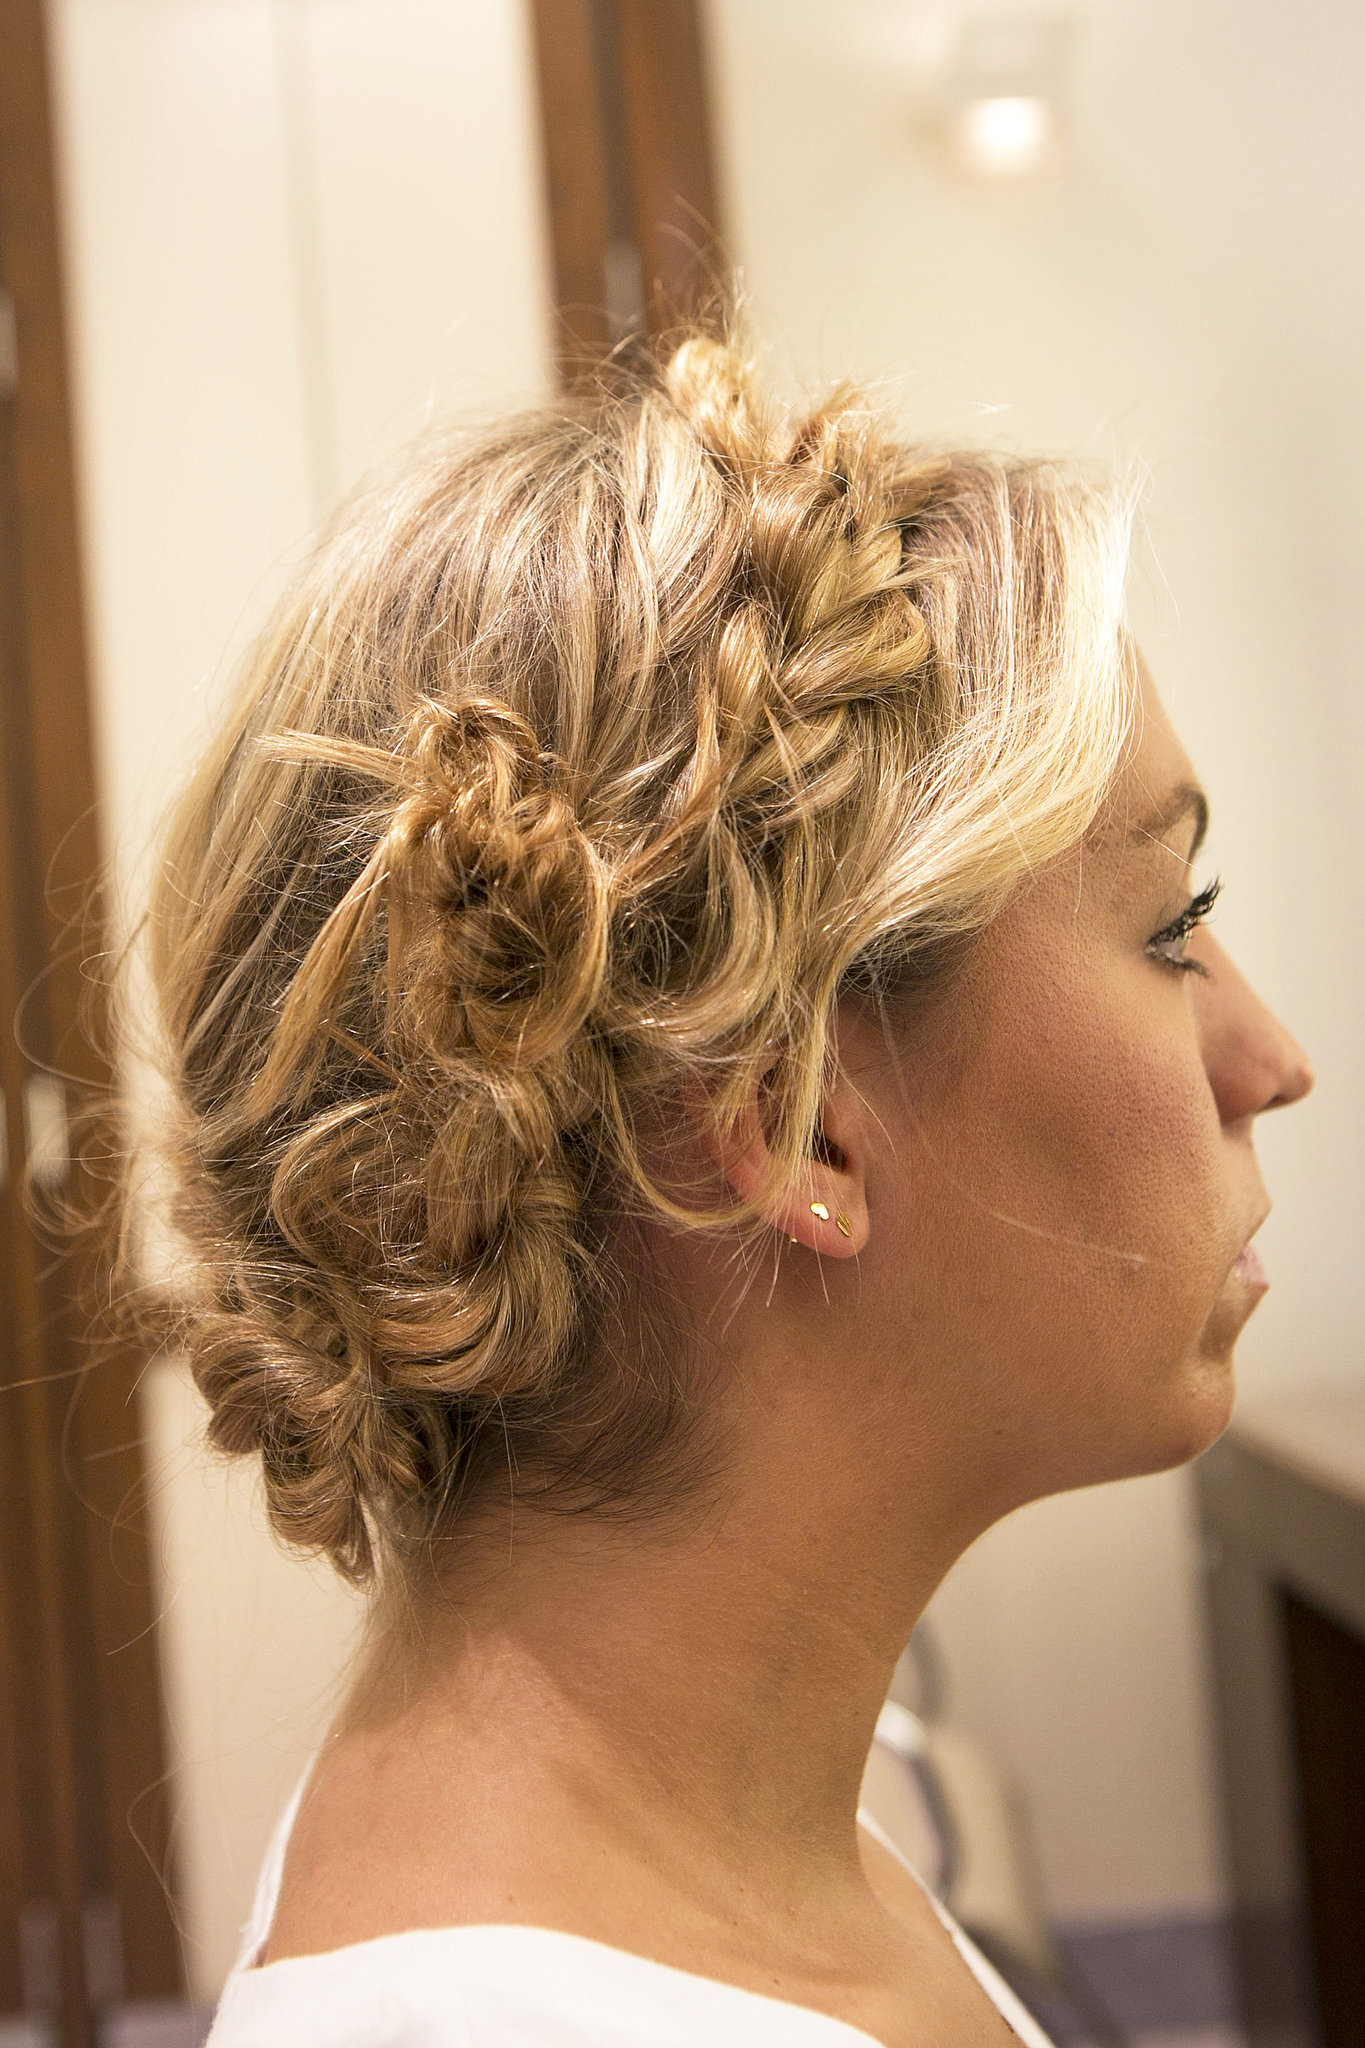 Connect it with the braid on the right side and pin.